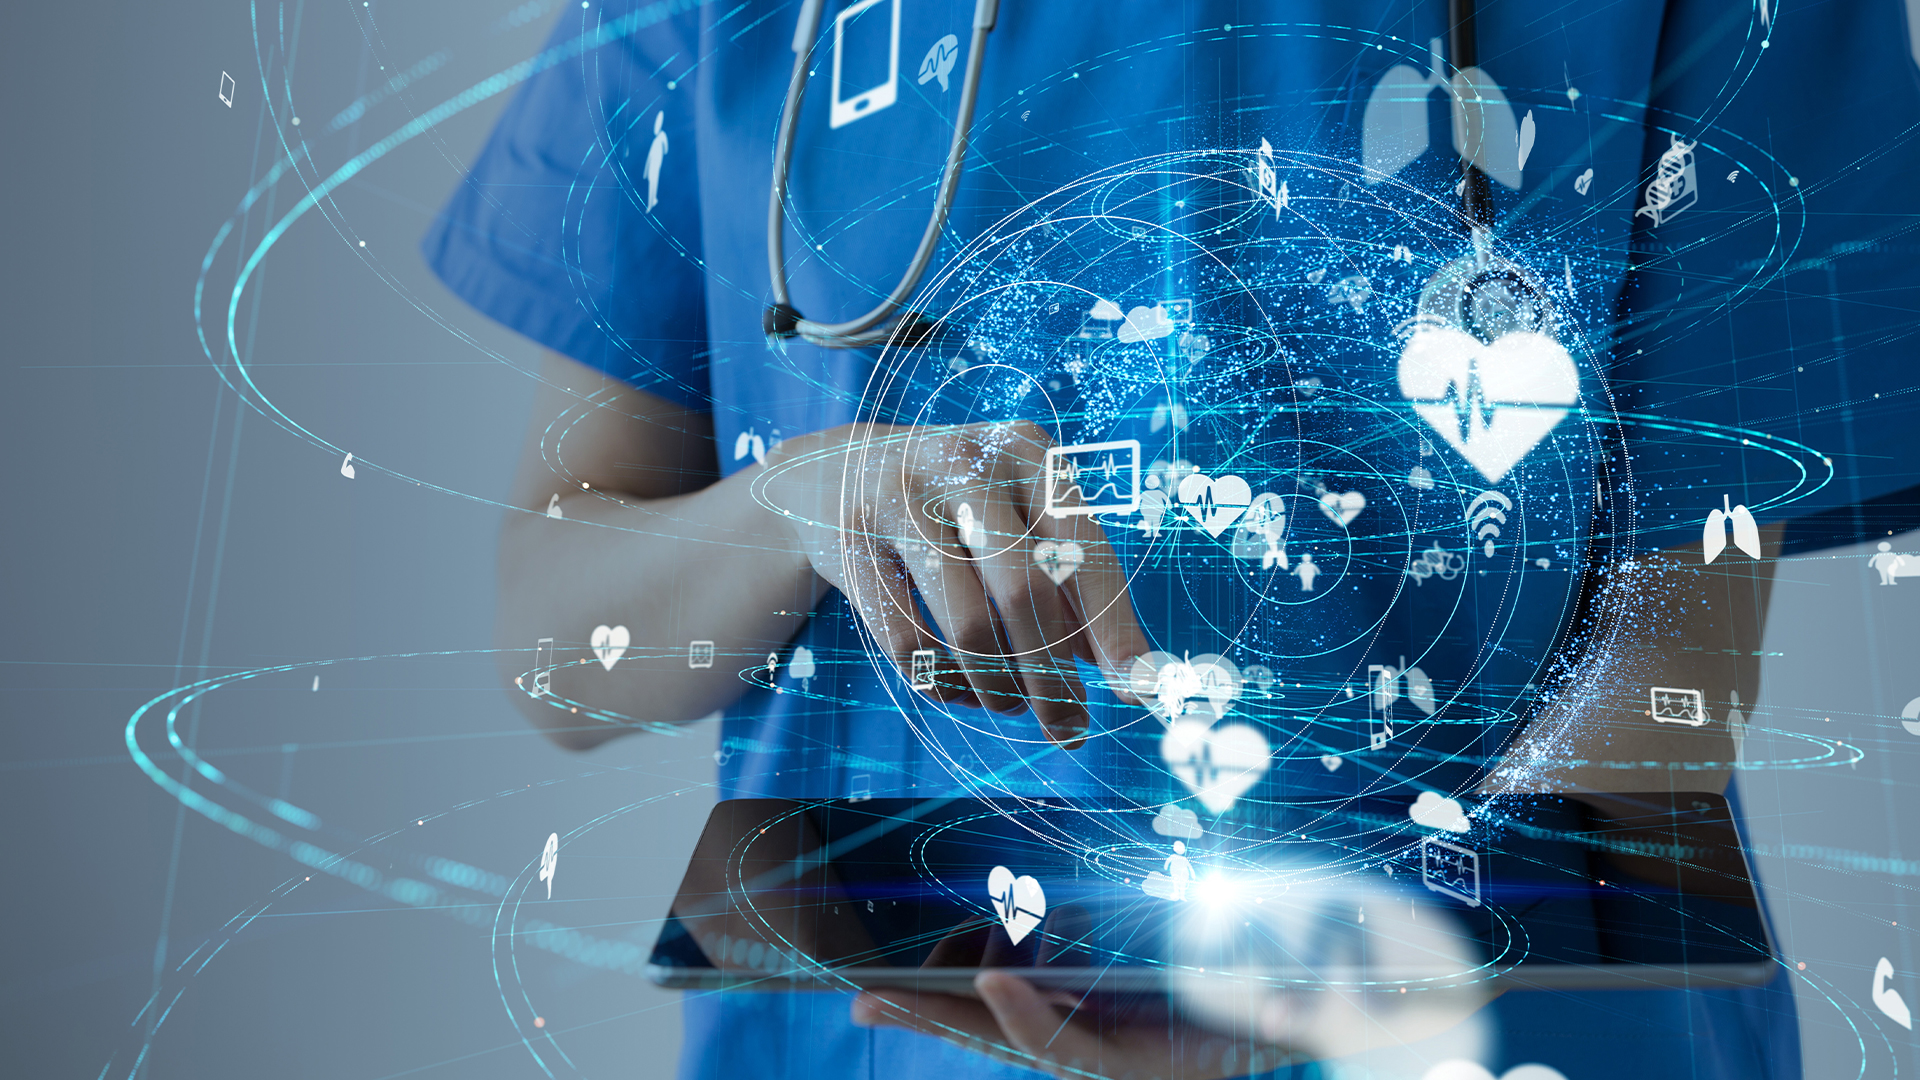 Applying Technology: How Health Care Coalitions are Decreasing and Controlling the Cost of Healthcare